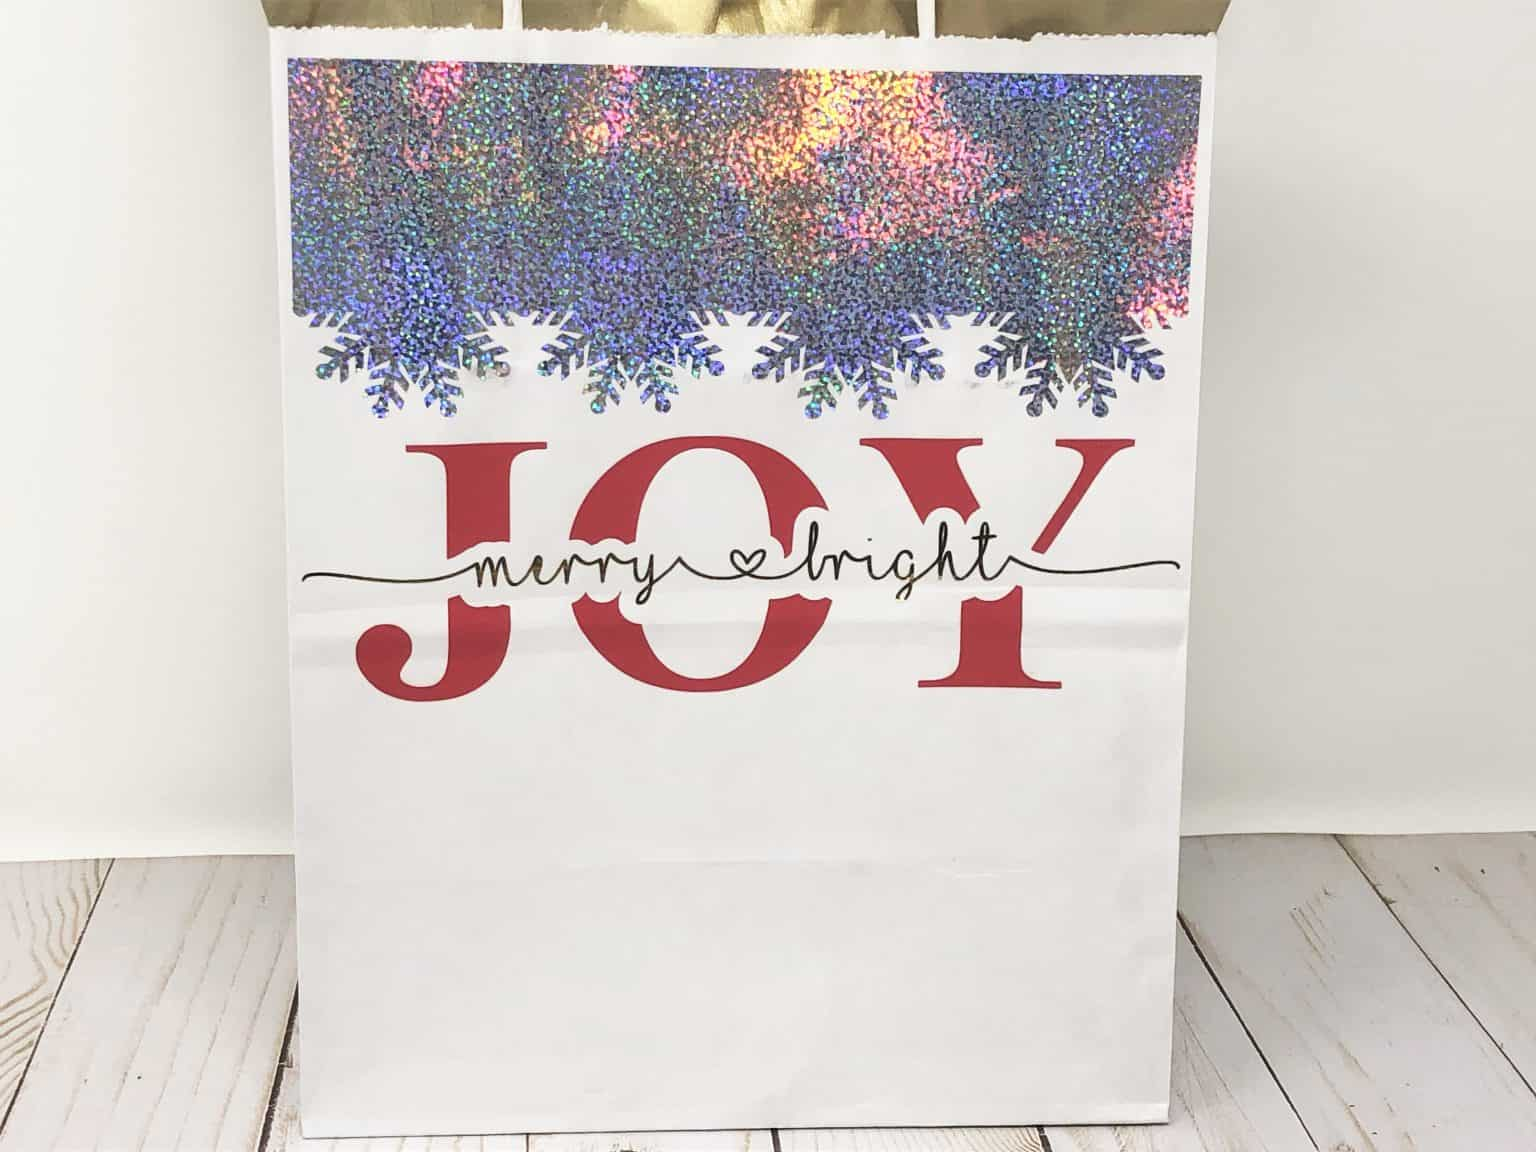 Joy with Merry & Bright Gift Bag using an offset to make a knockout image.